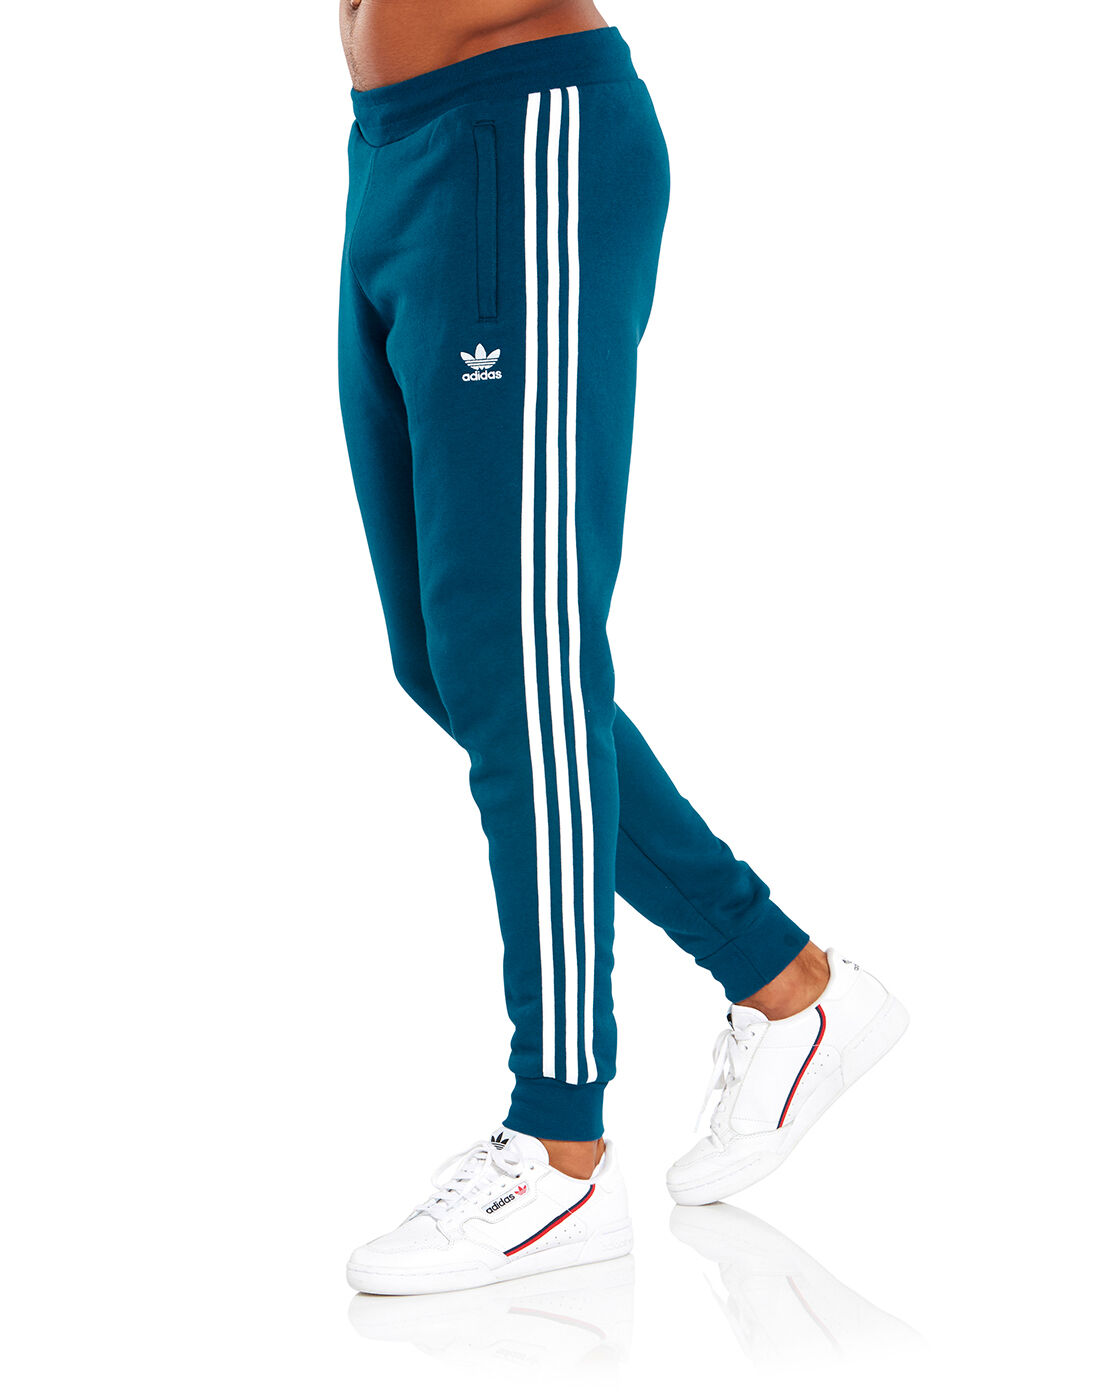 adidas 3 stripes pants uomo